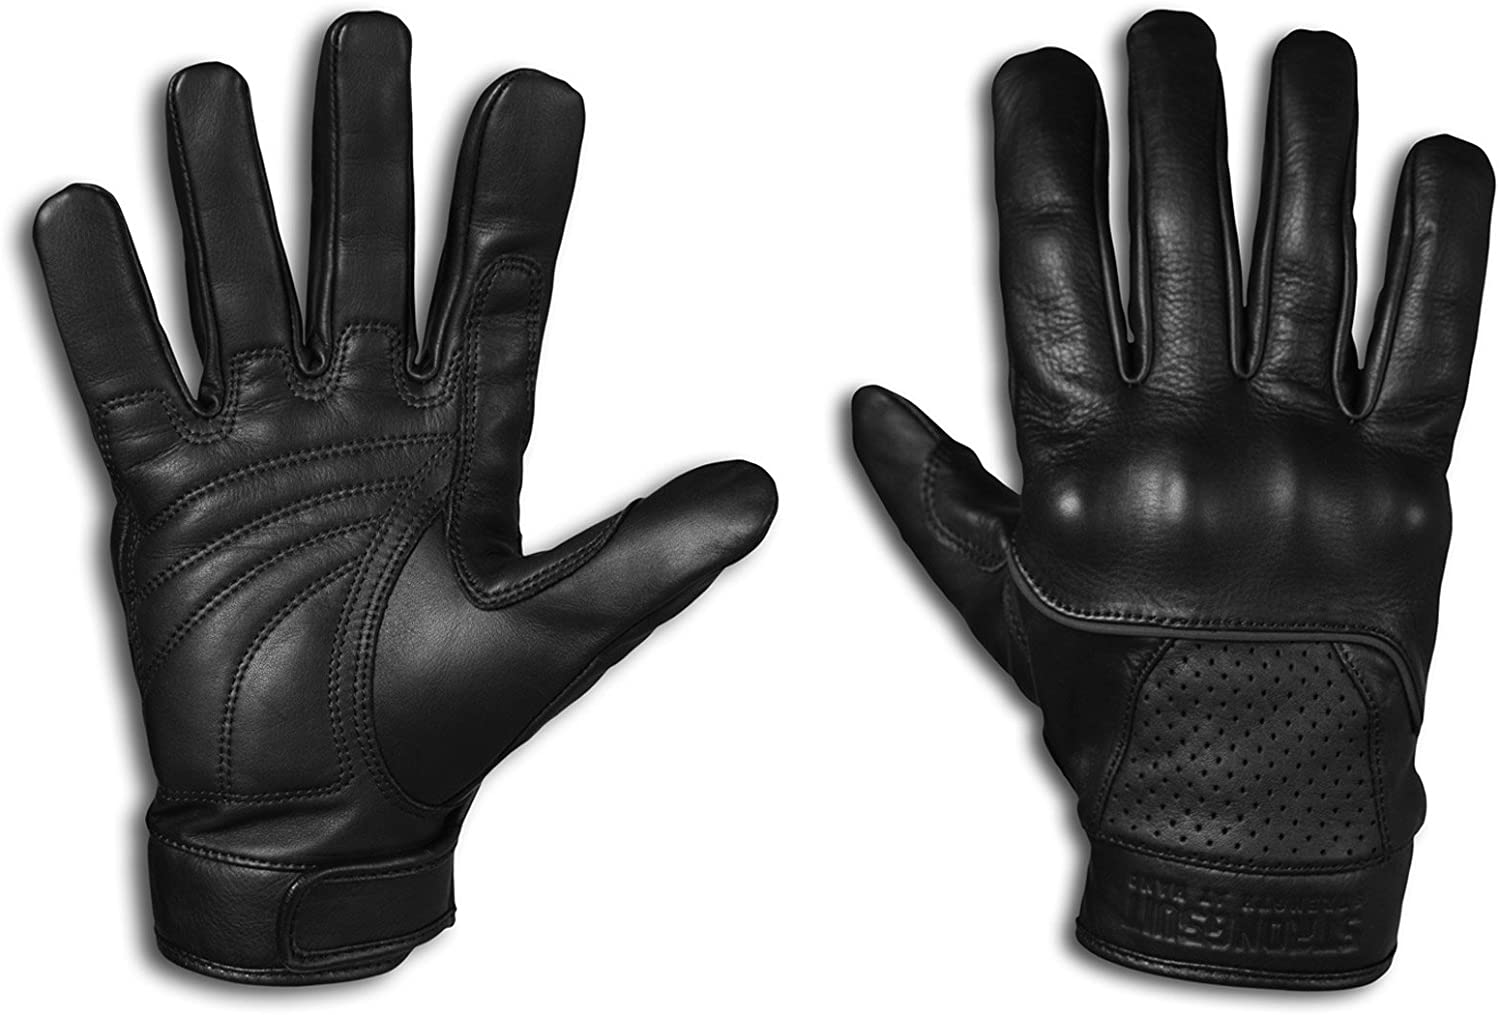 StrongSuit 20300-S Voyager Leather Motorcycle Gloves, Small